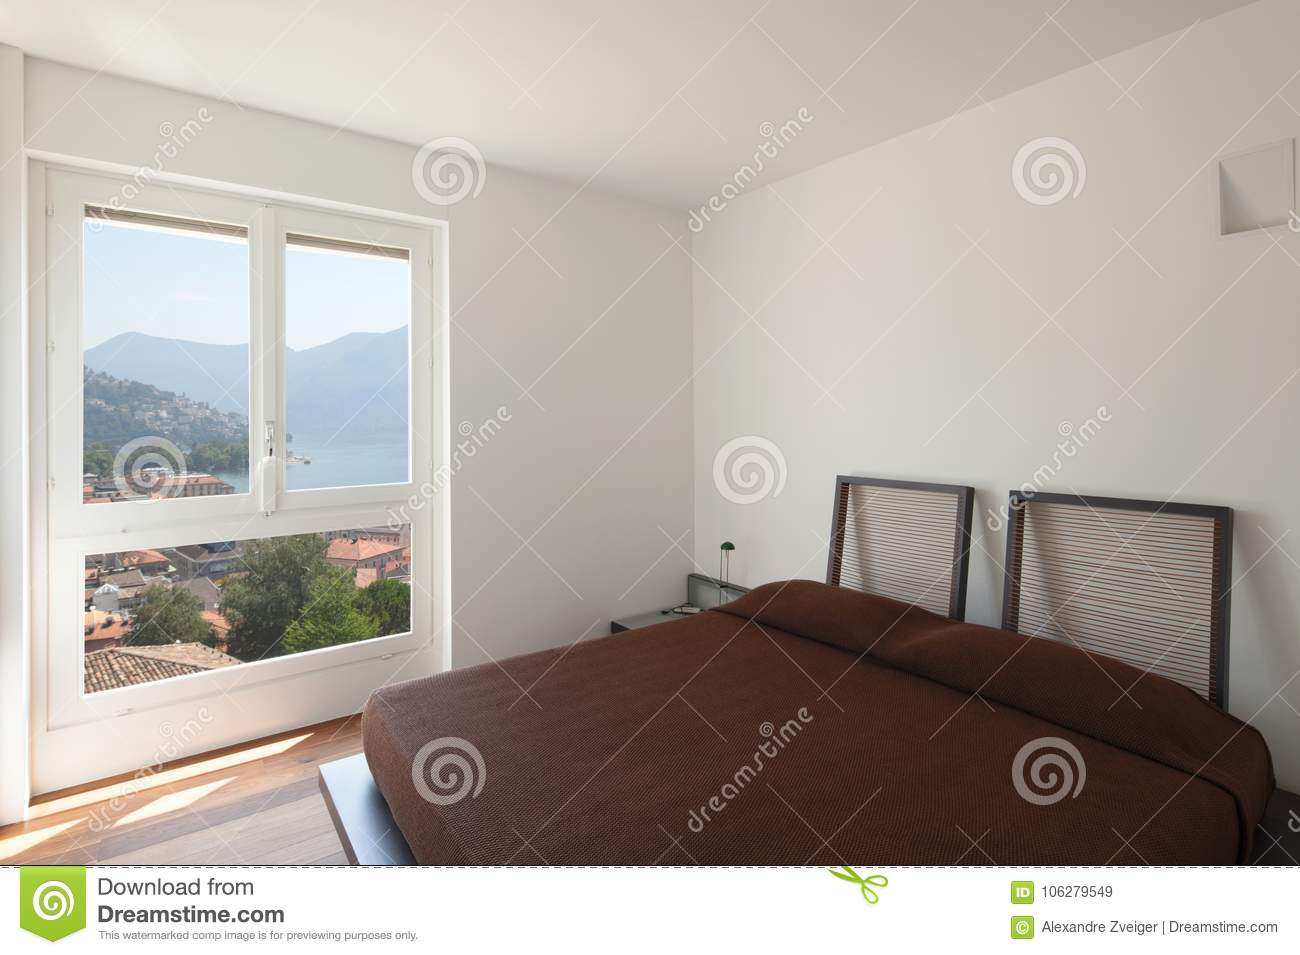 Luxury Bedroom And Beautiful View Stock Image - Image of leather ... bcd4e2114299f